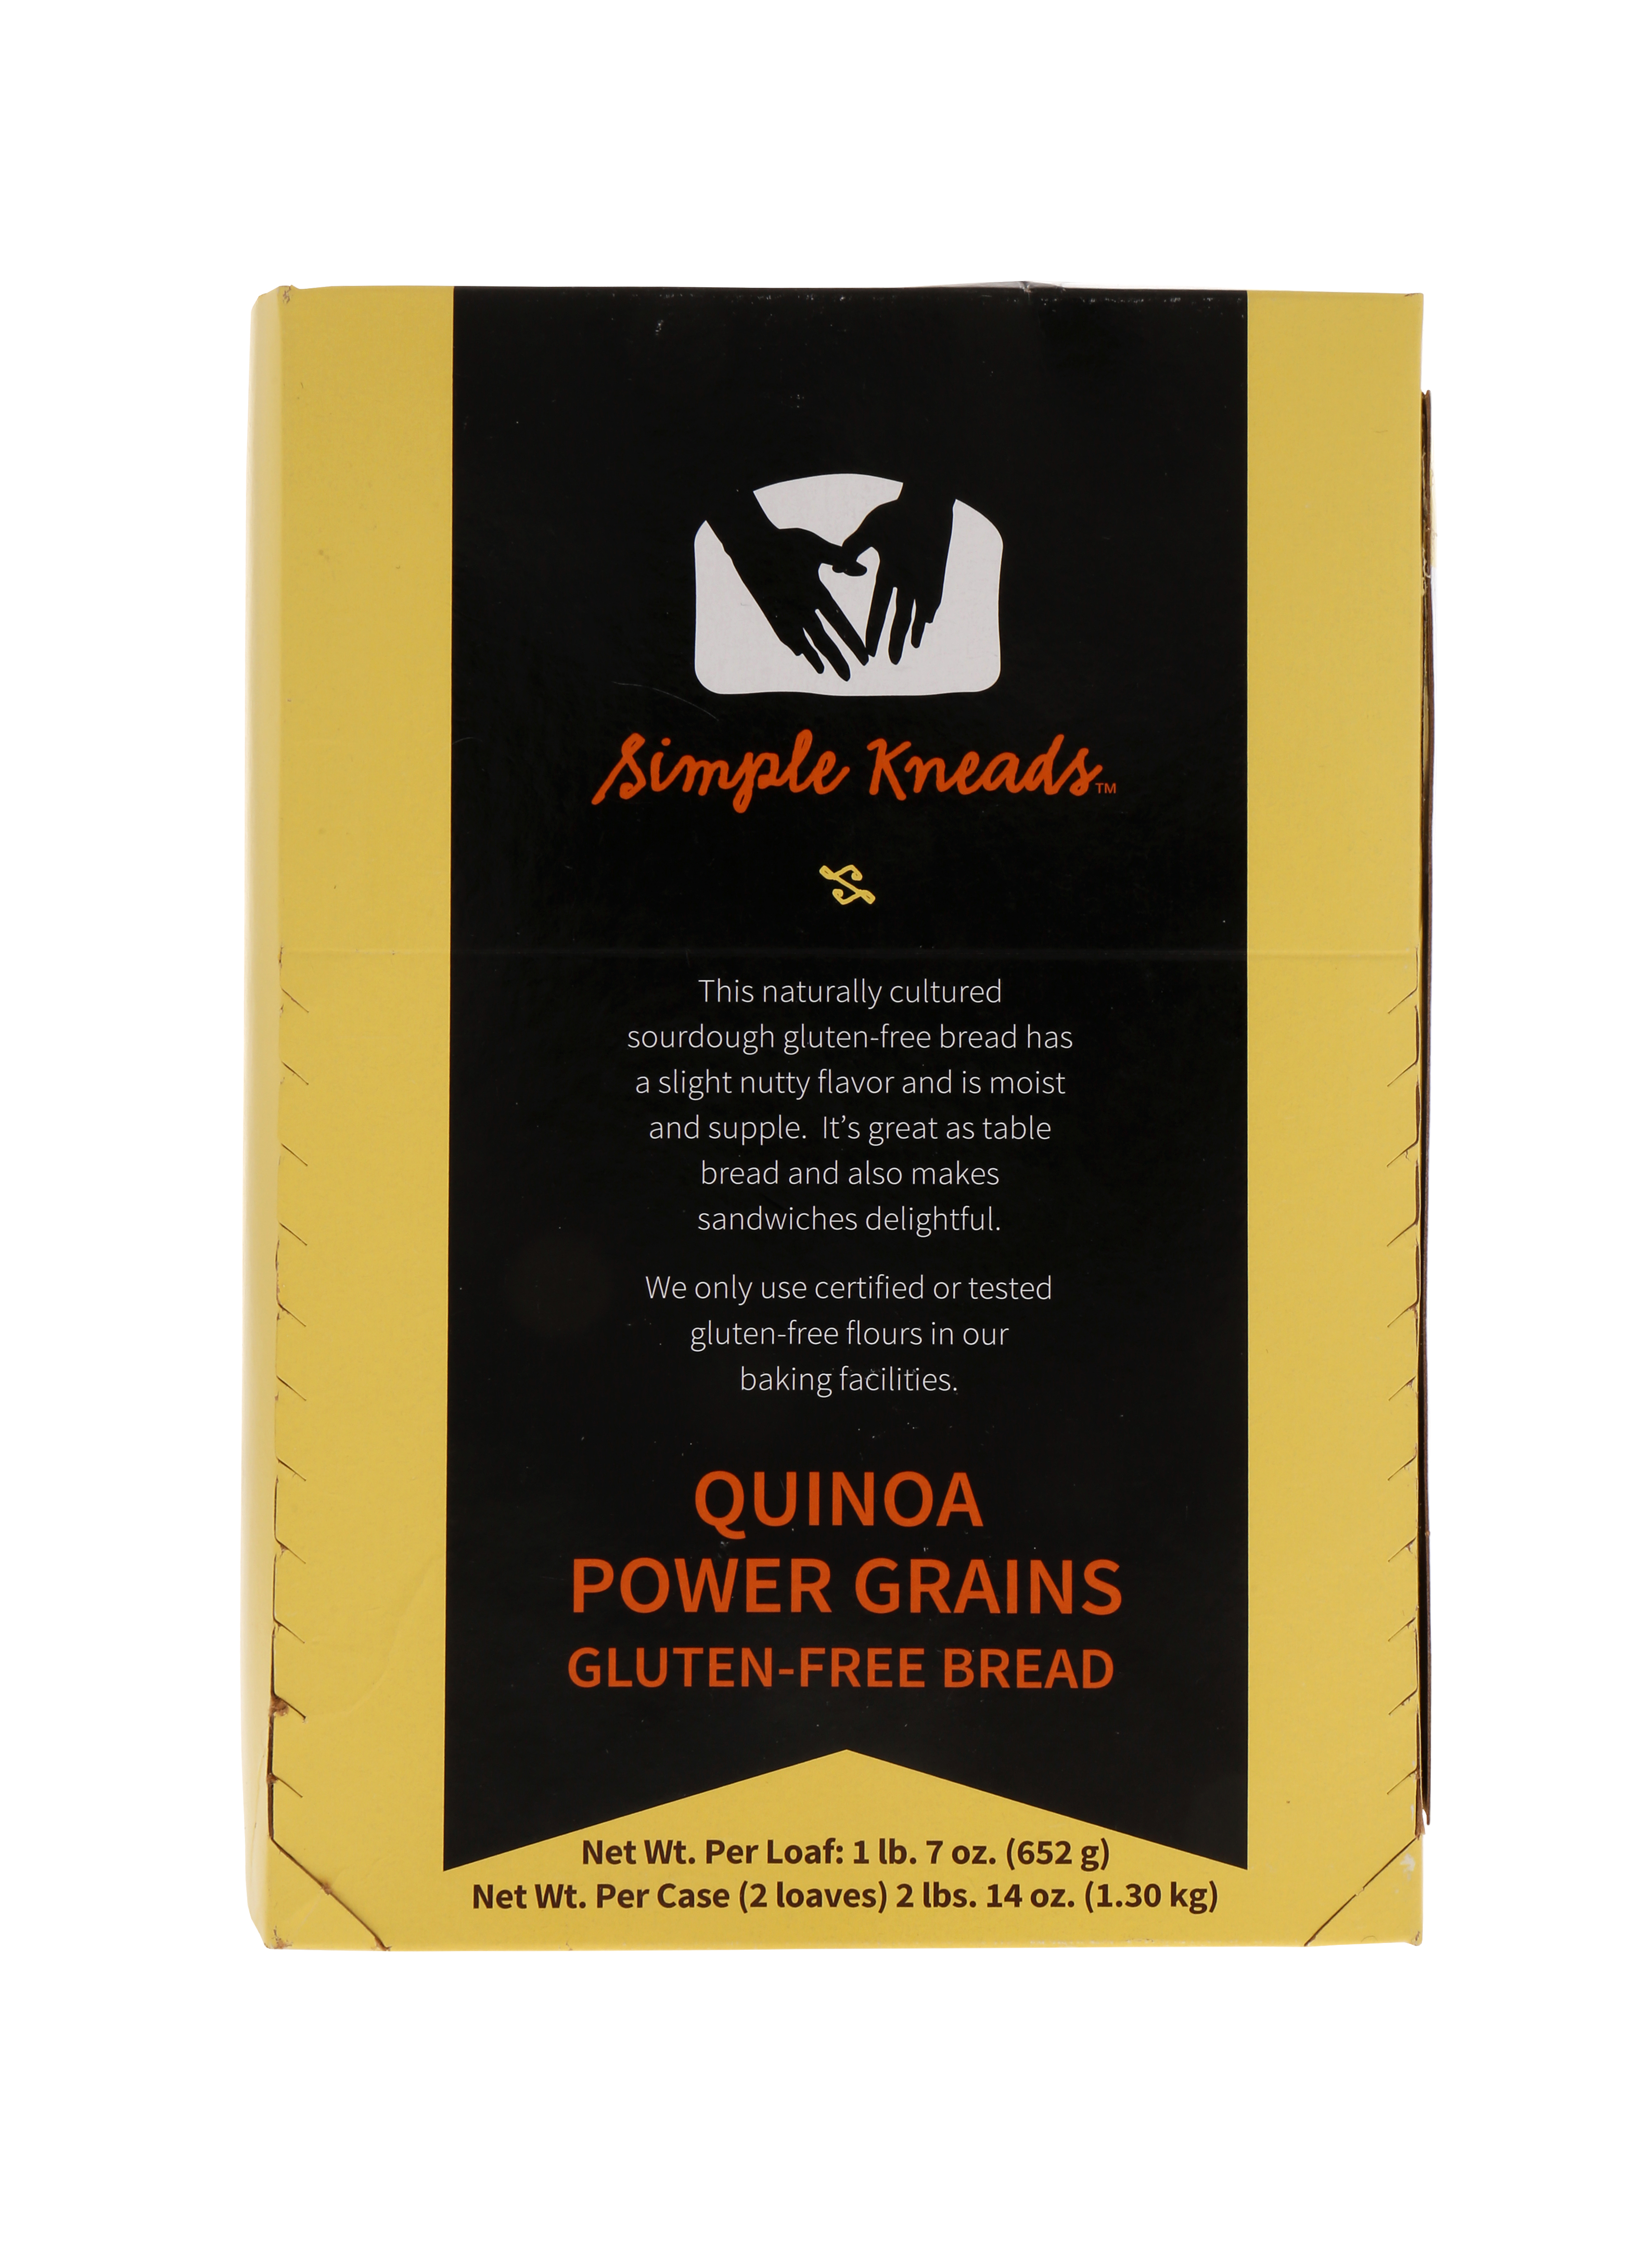 Quinoa Power Grains